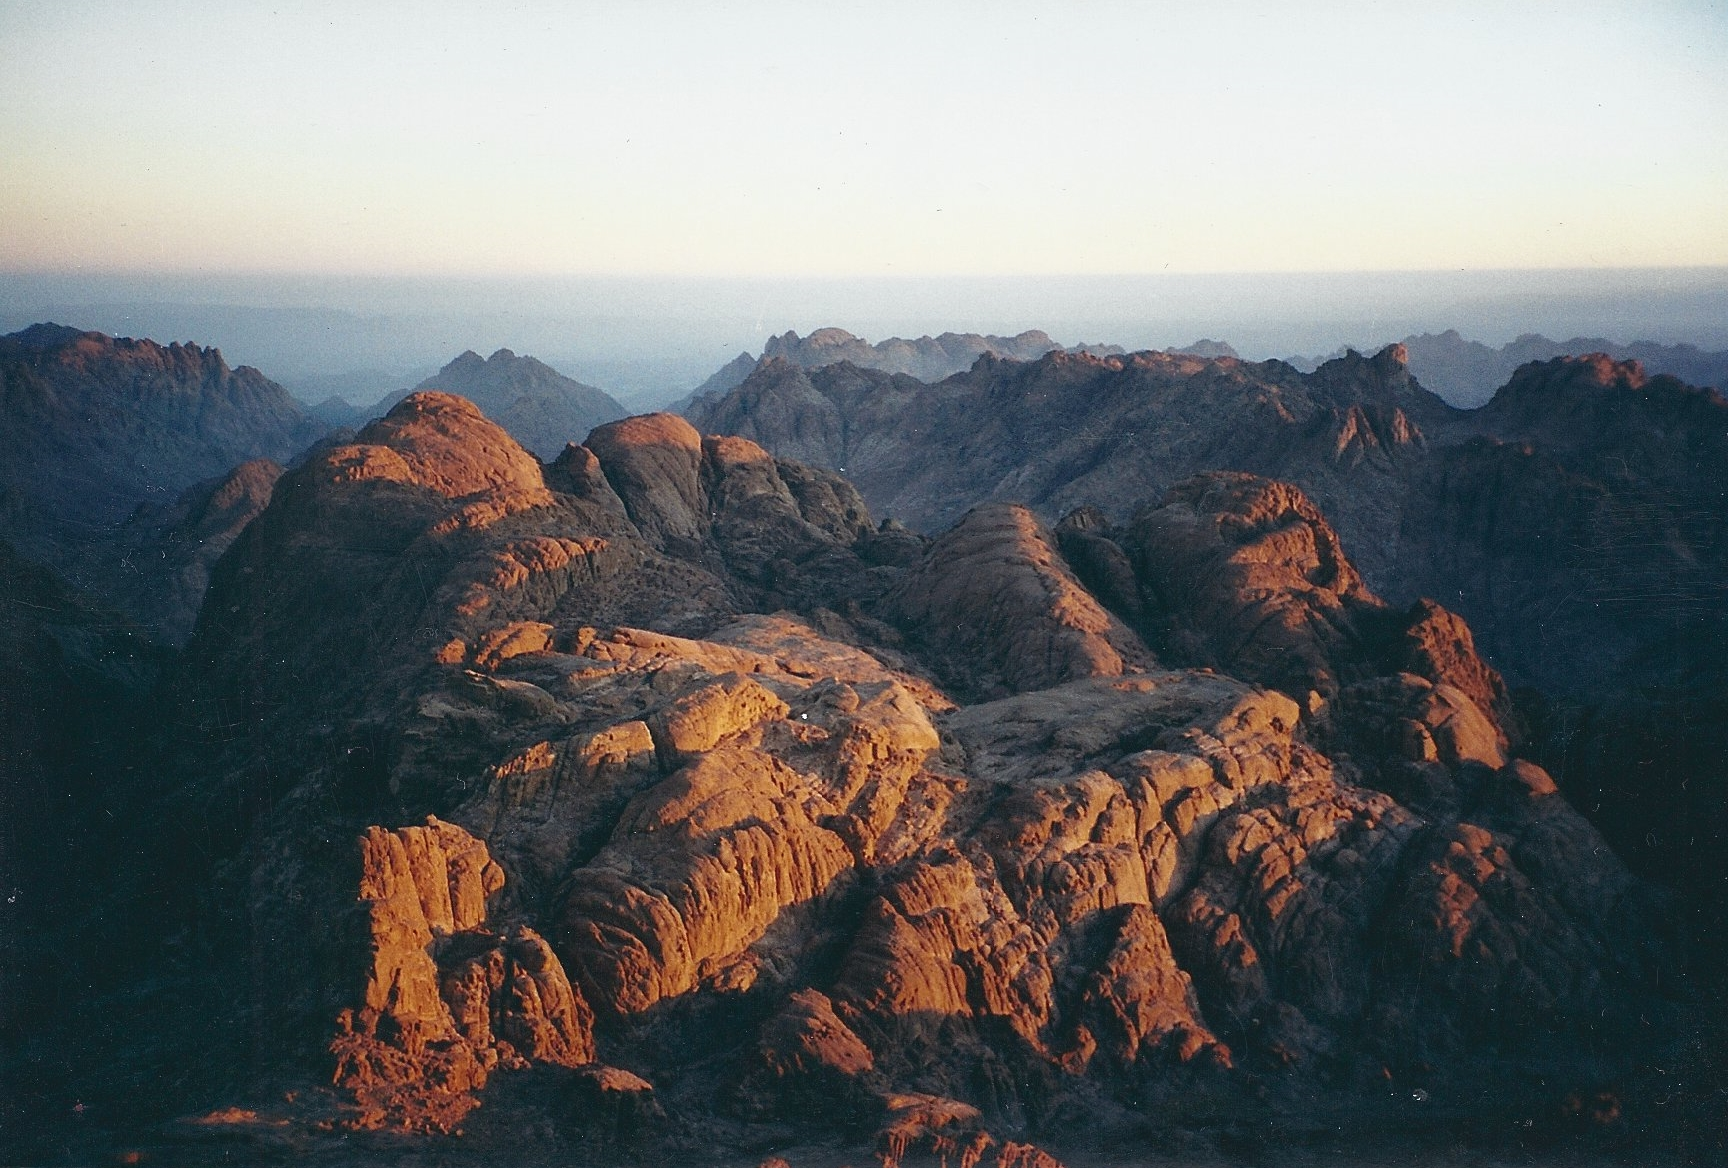 Sunrise on Mount Sinai                                                                  Egypt      June 2000